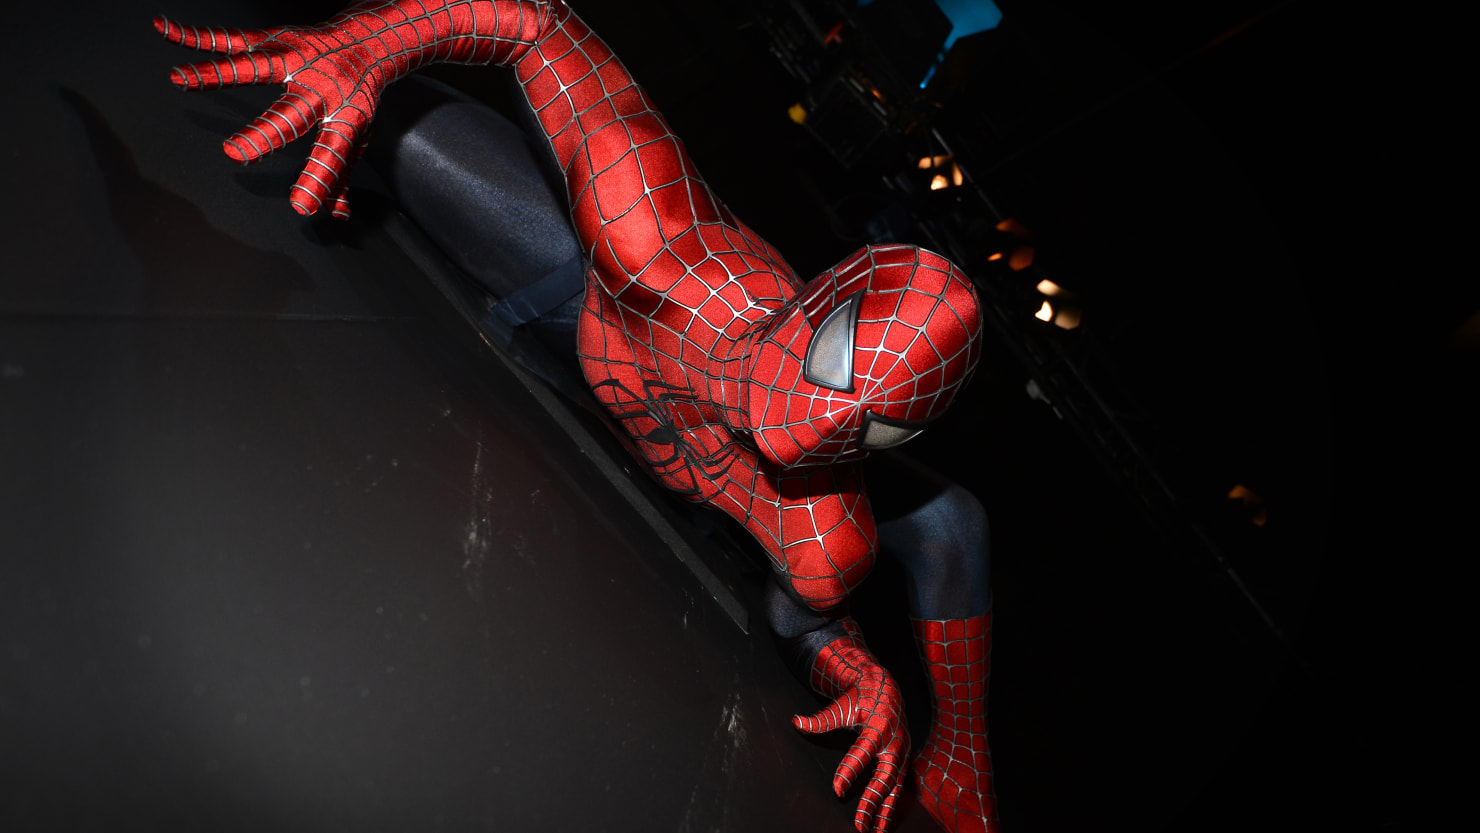 Study Finds Marvel Movies Can Reduce Spider and Ant Phobias